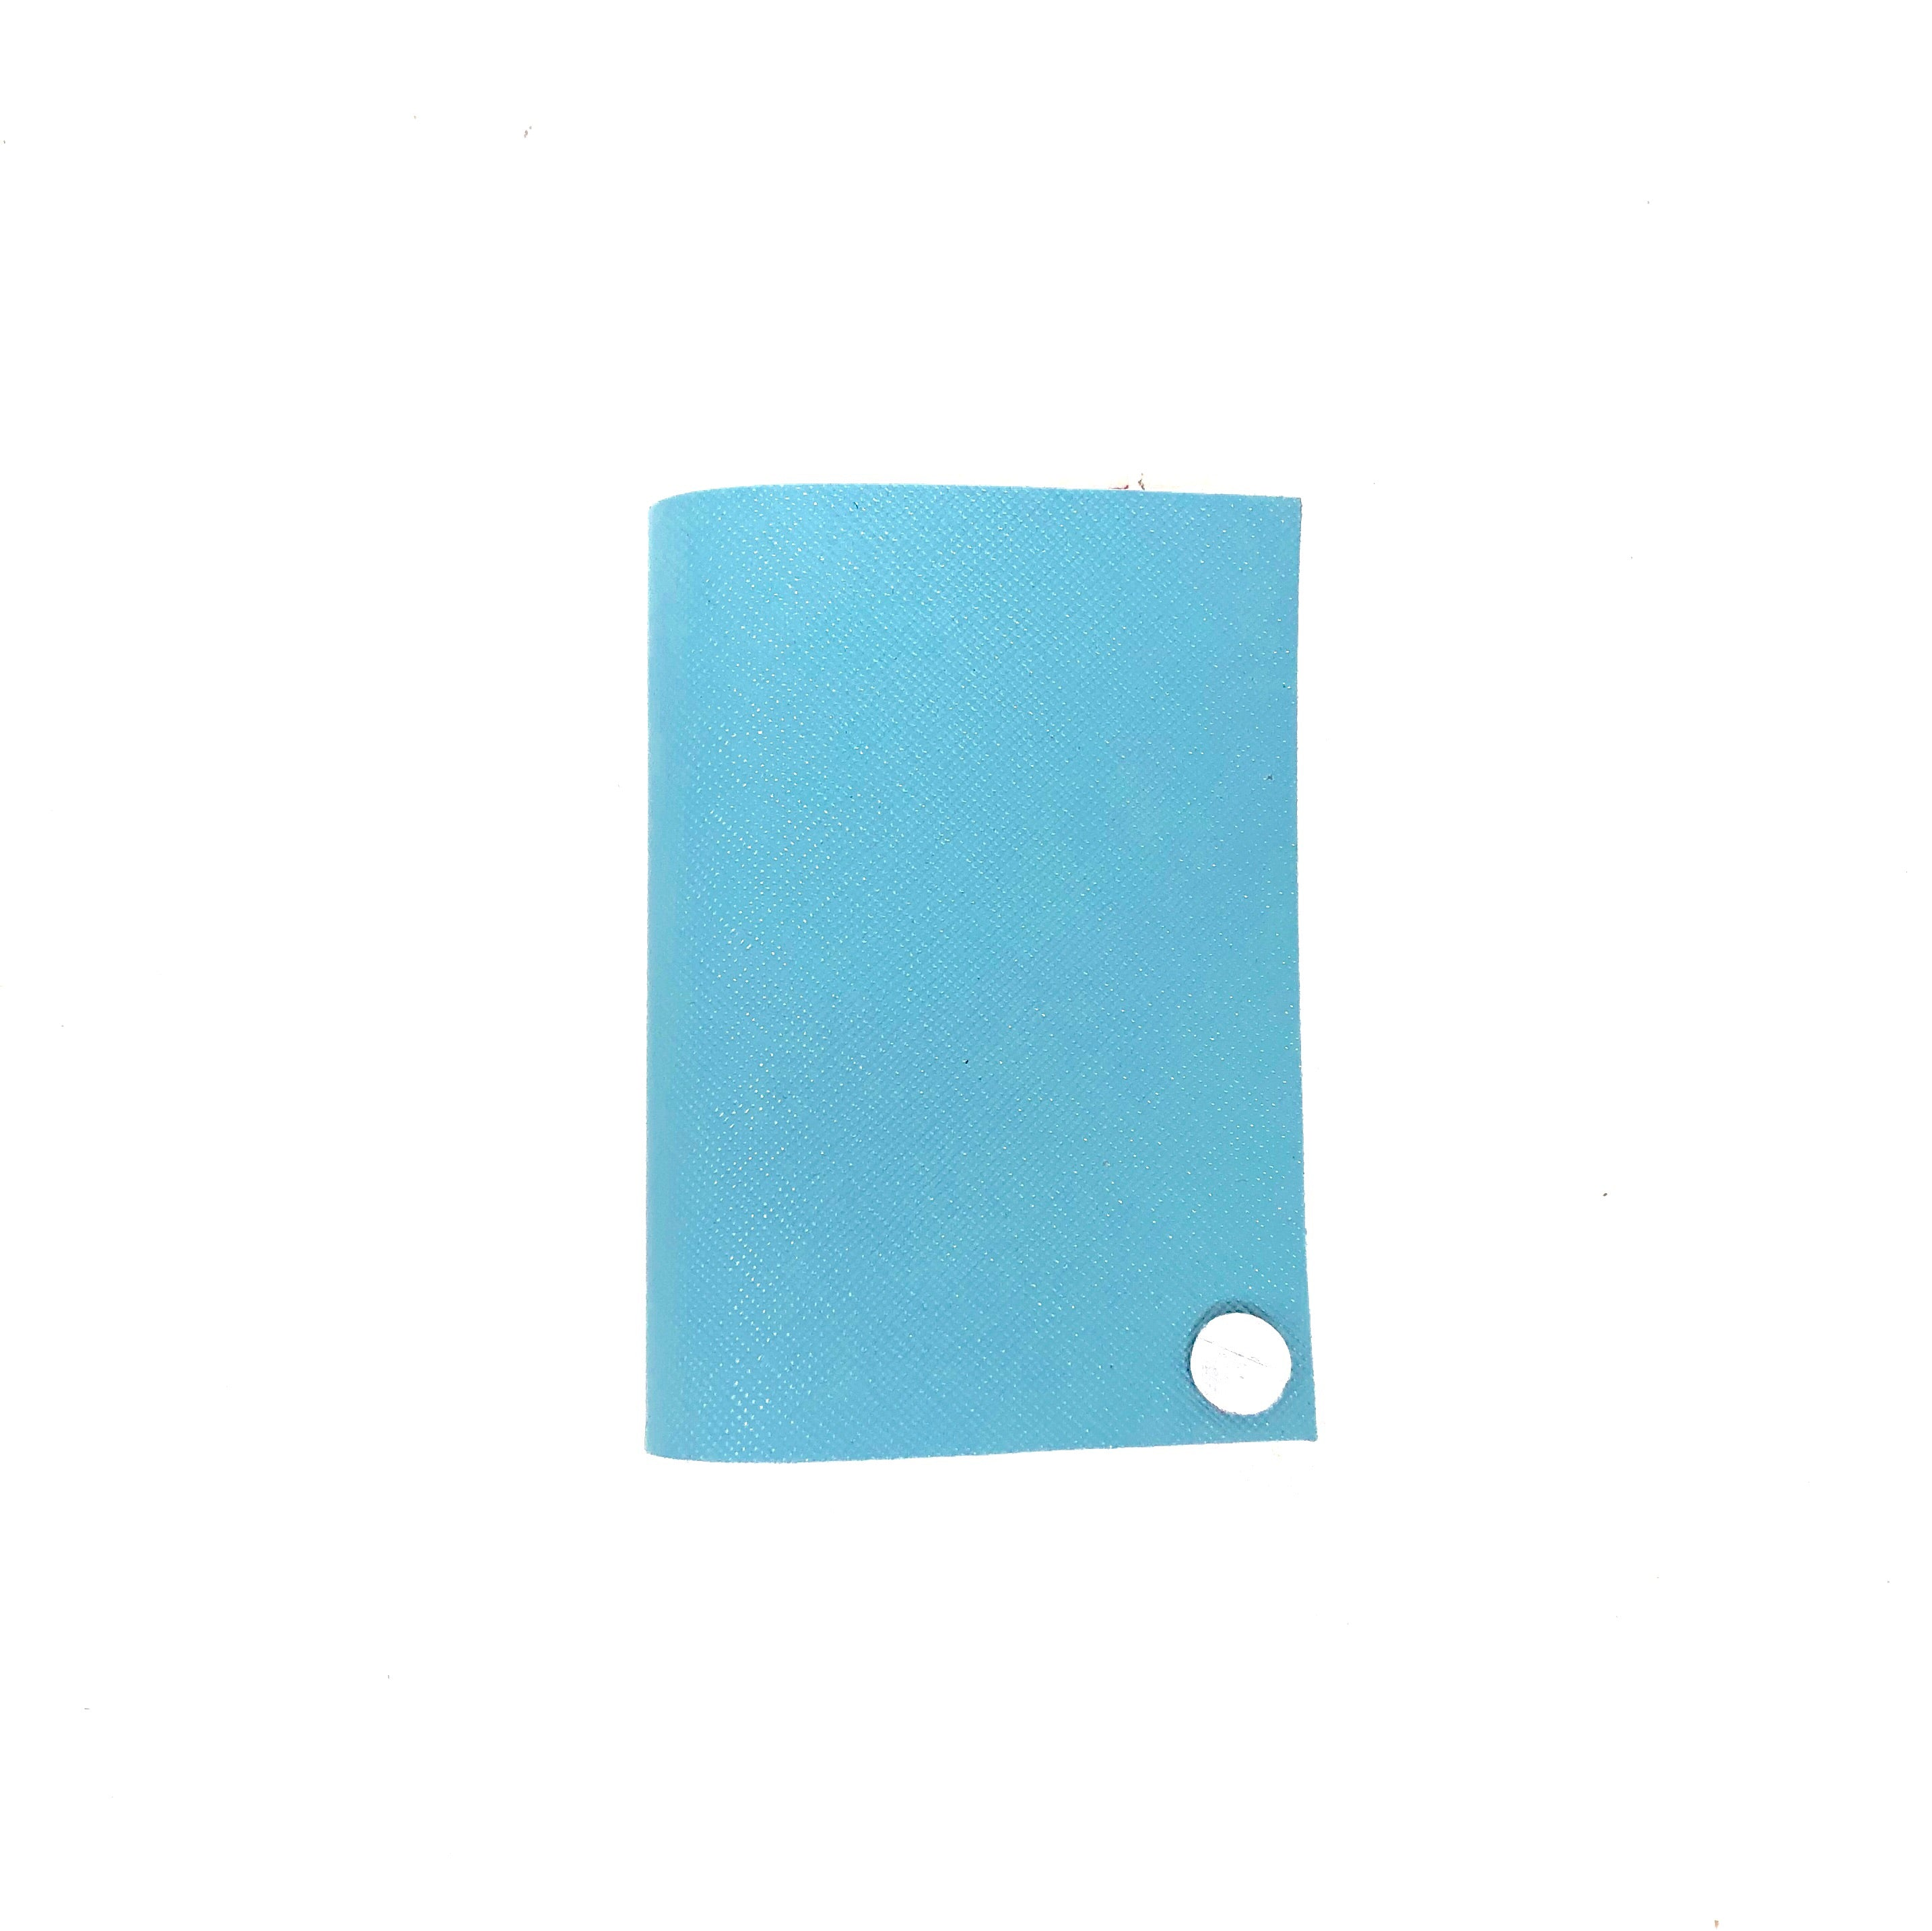 Credit card holder w/ sleeves